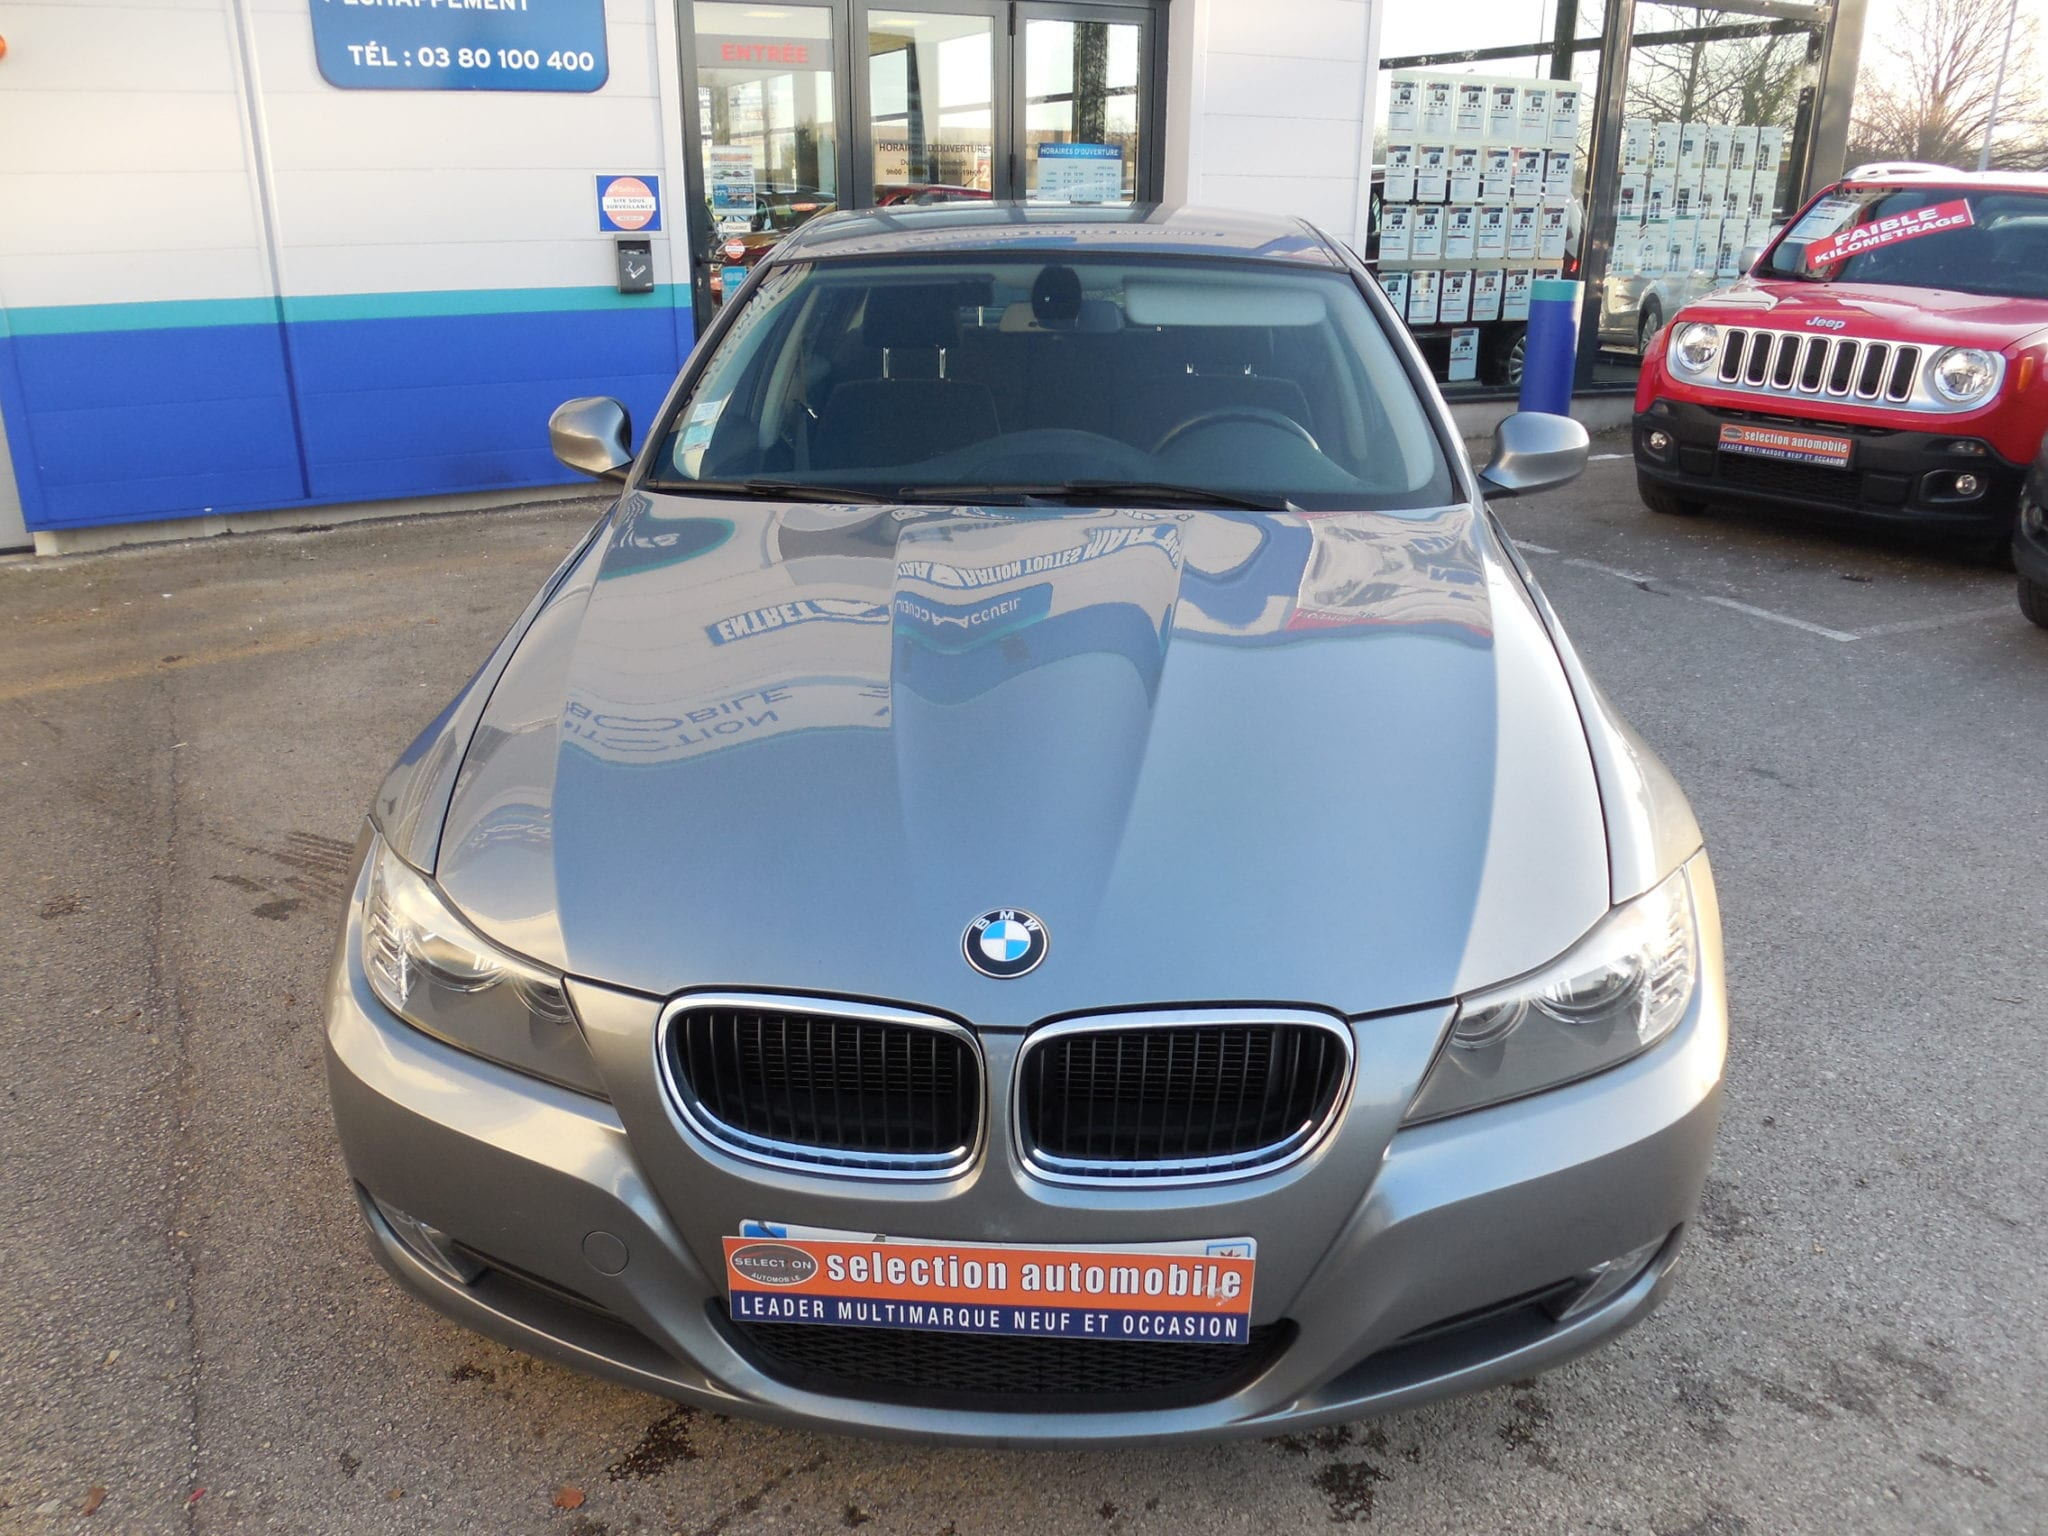 Bmw Bmw Serie 3 Edition business 184cv  - Image 1